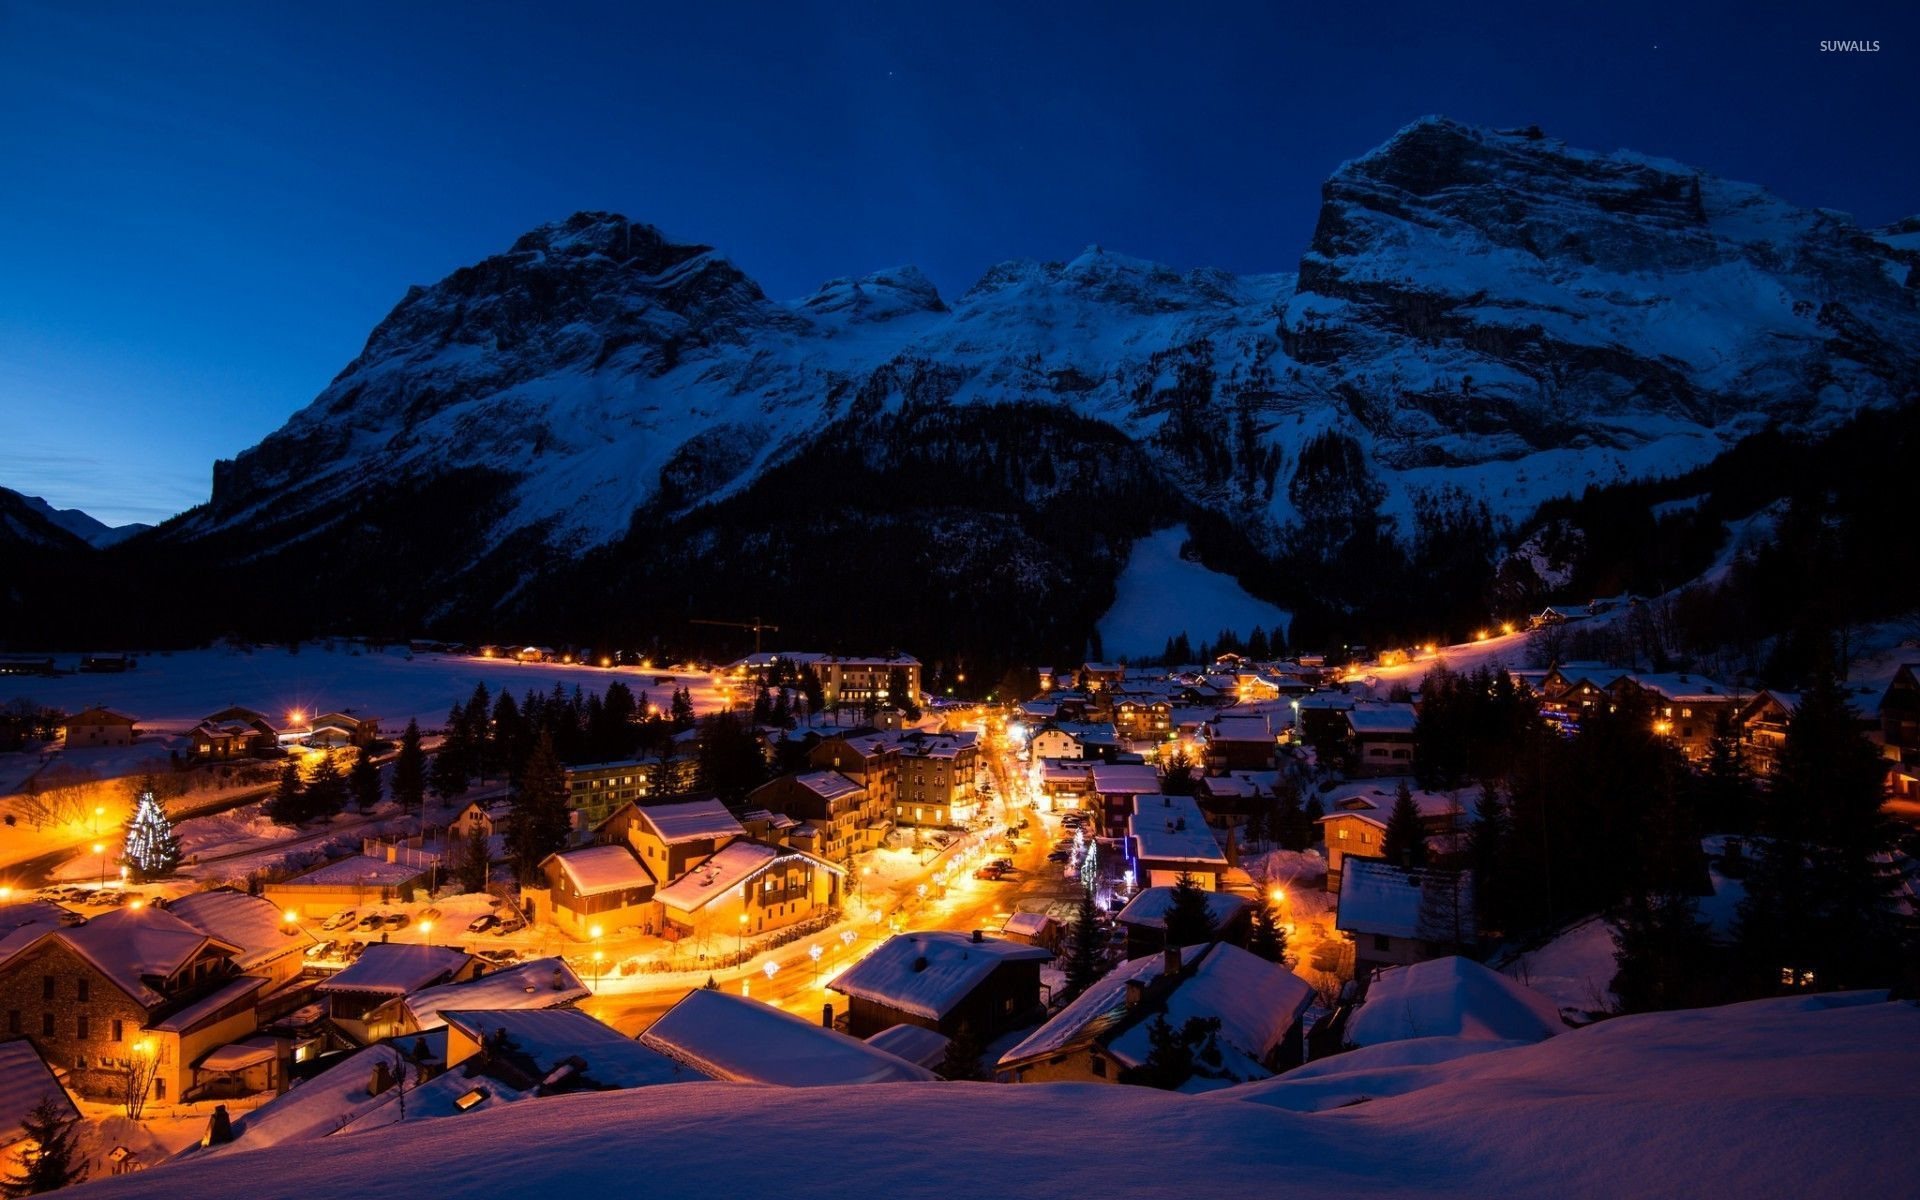 Night lights in the snowy mountain town wallpaper